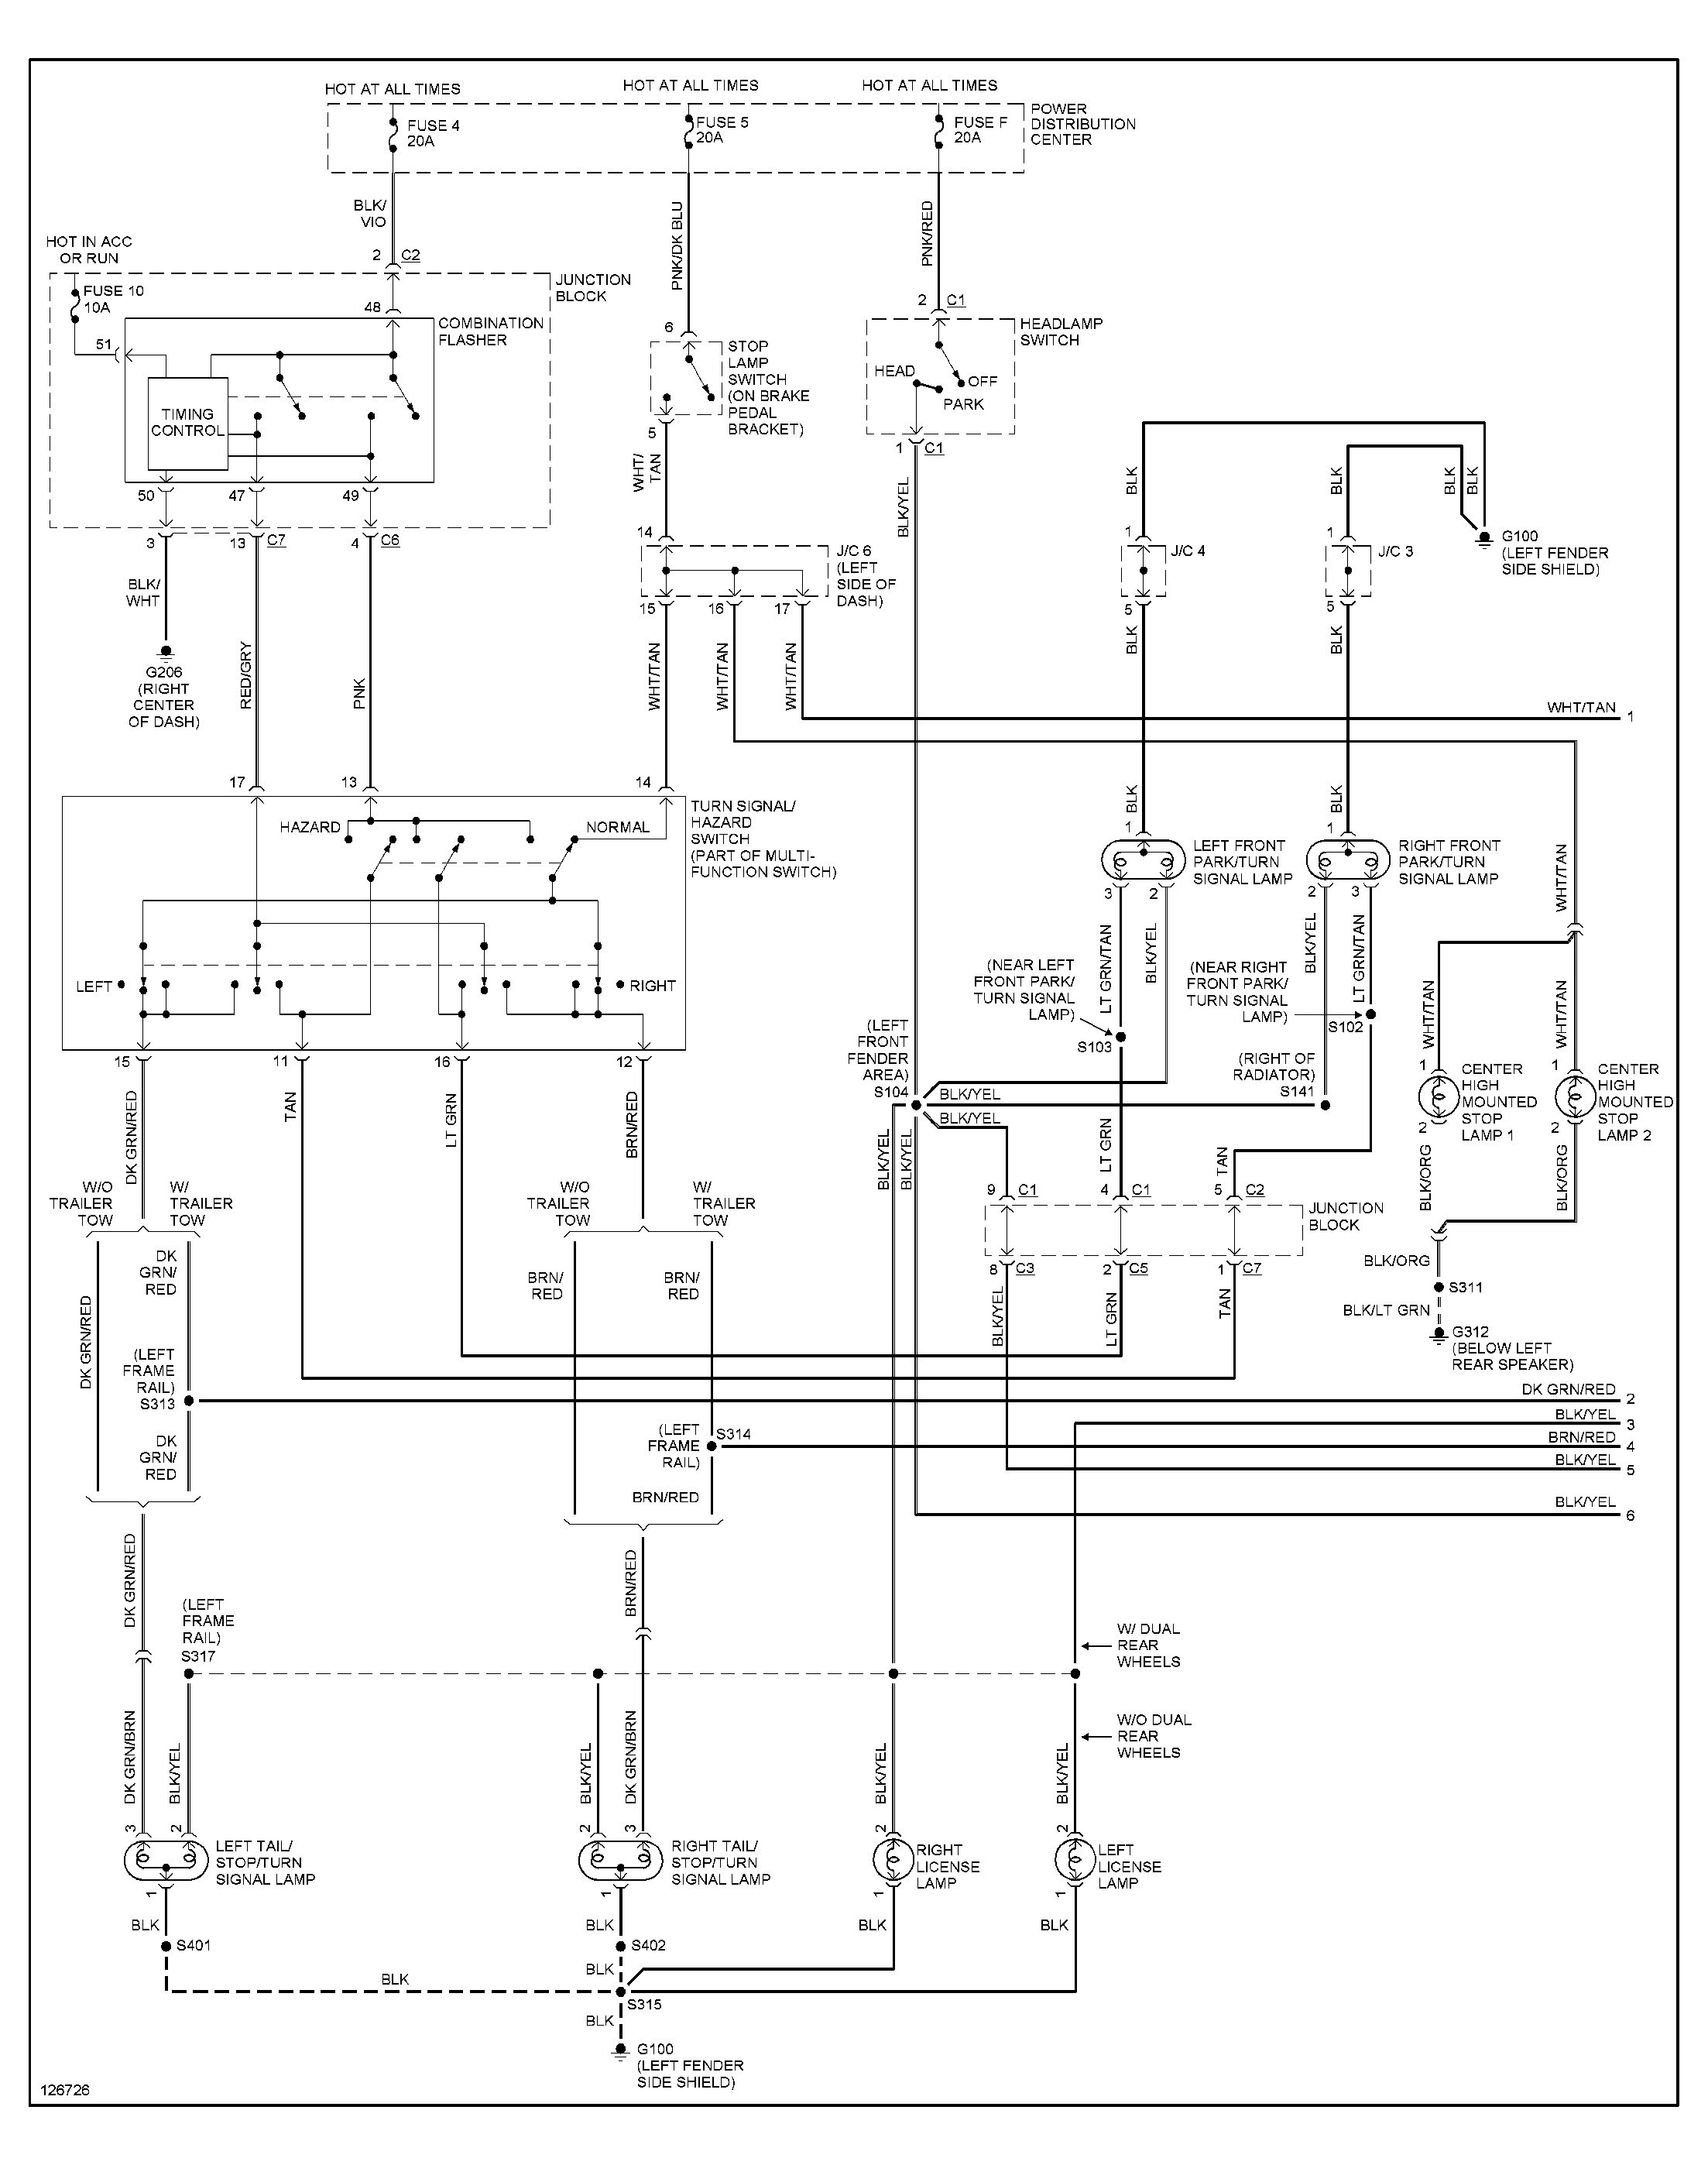 [TBQL_4184]  DIAGRAM] 2002 Dodge Ram Van 3500 Wiring Diagram FULL Version HD Quality Wiring  Diagram - BLOGDIAGRAM.GLAUCOMANET.IT | 96 Dodge 318 Wiring Diagram |  | Glaucomanet.it